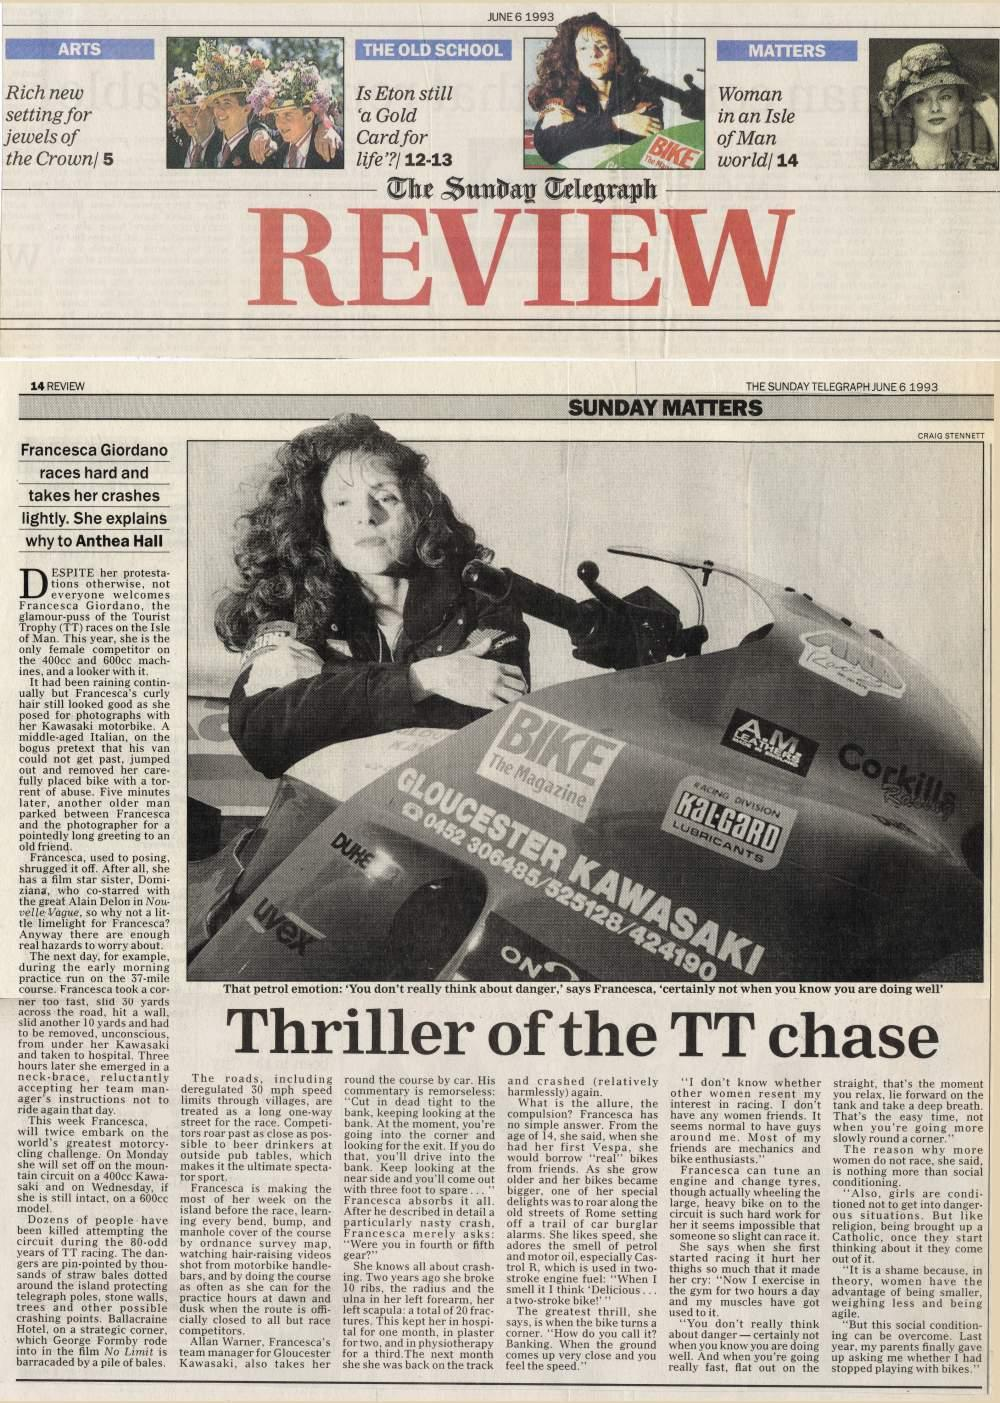 Thrill of the TT Chase - Sunday Telegraph - 6 June 1993